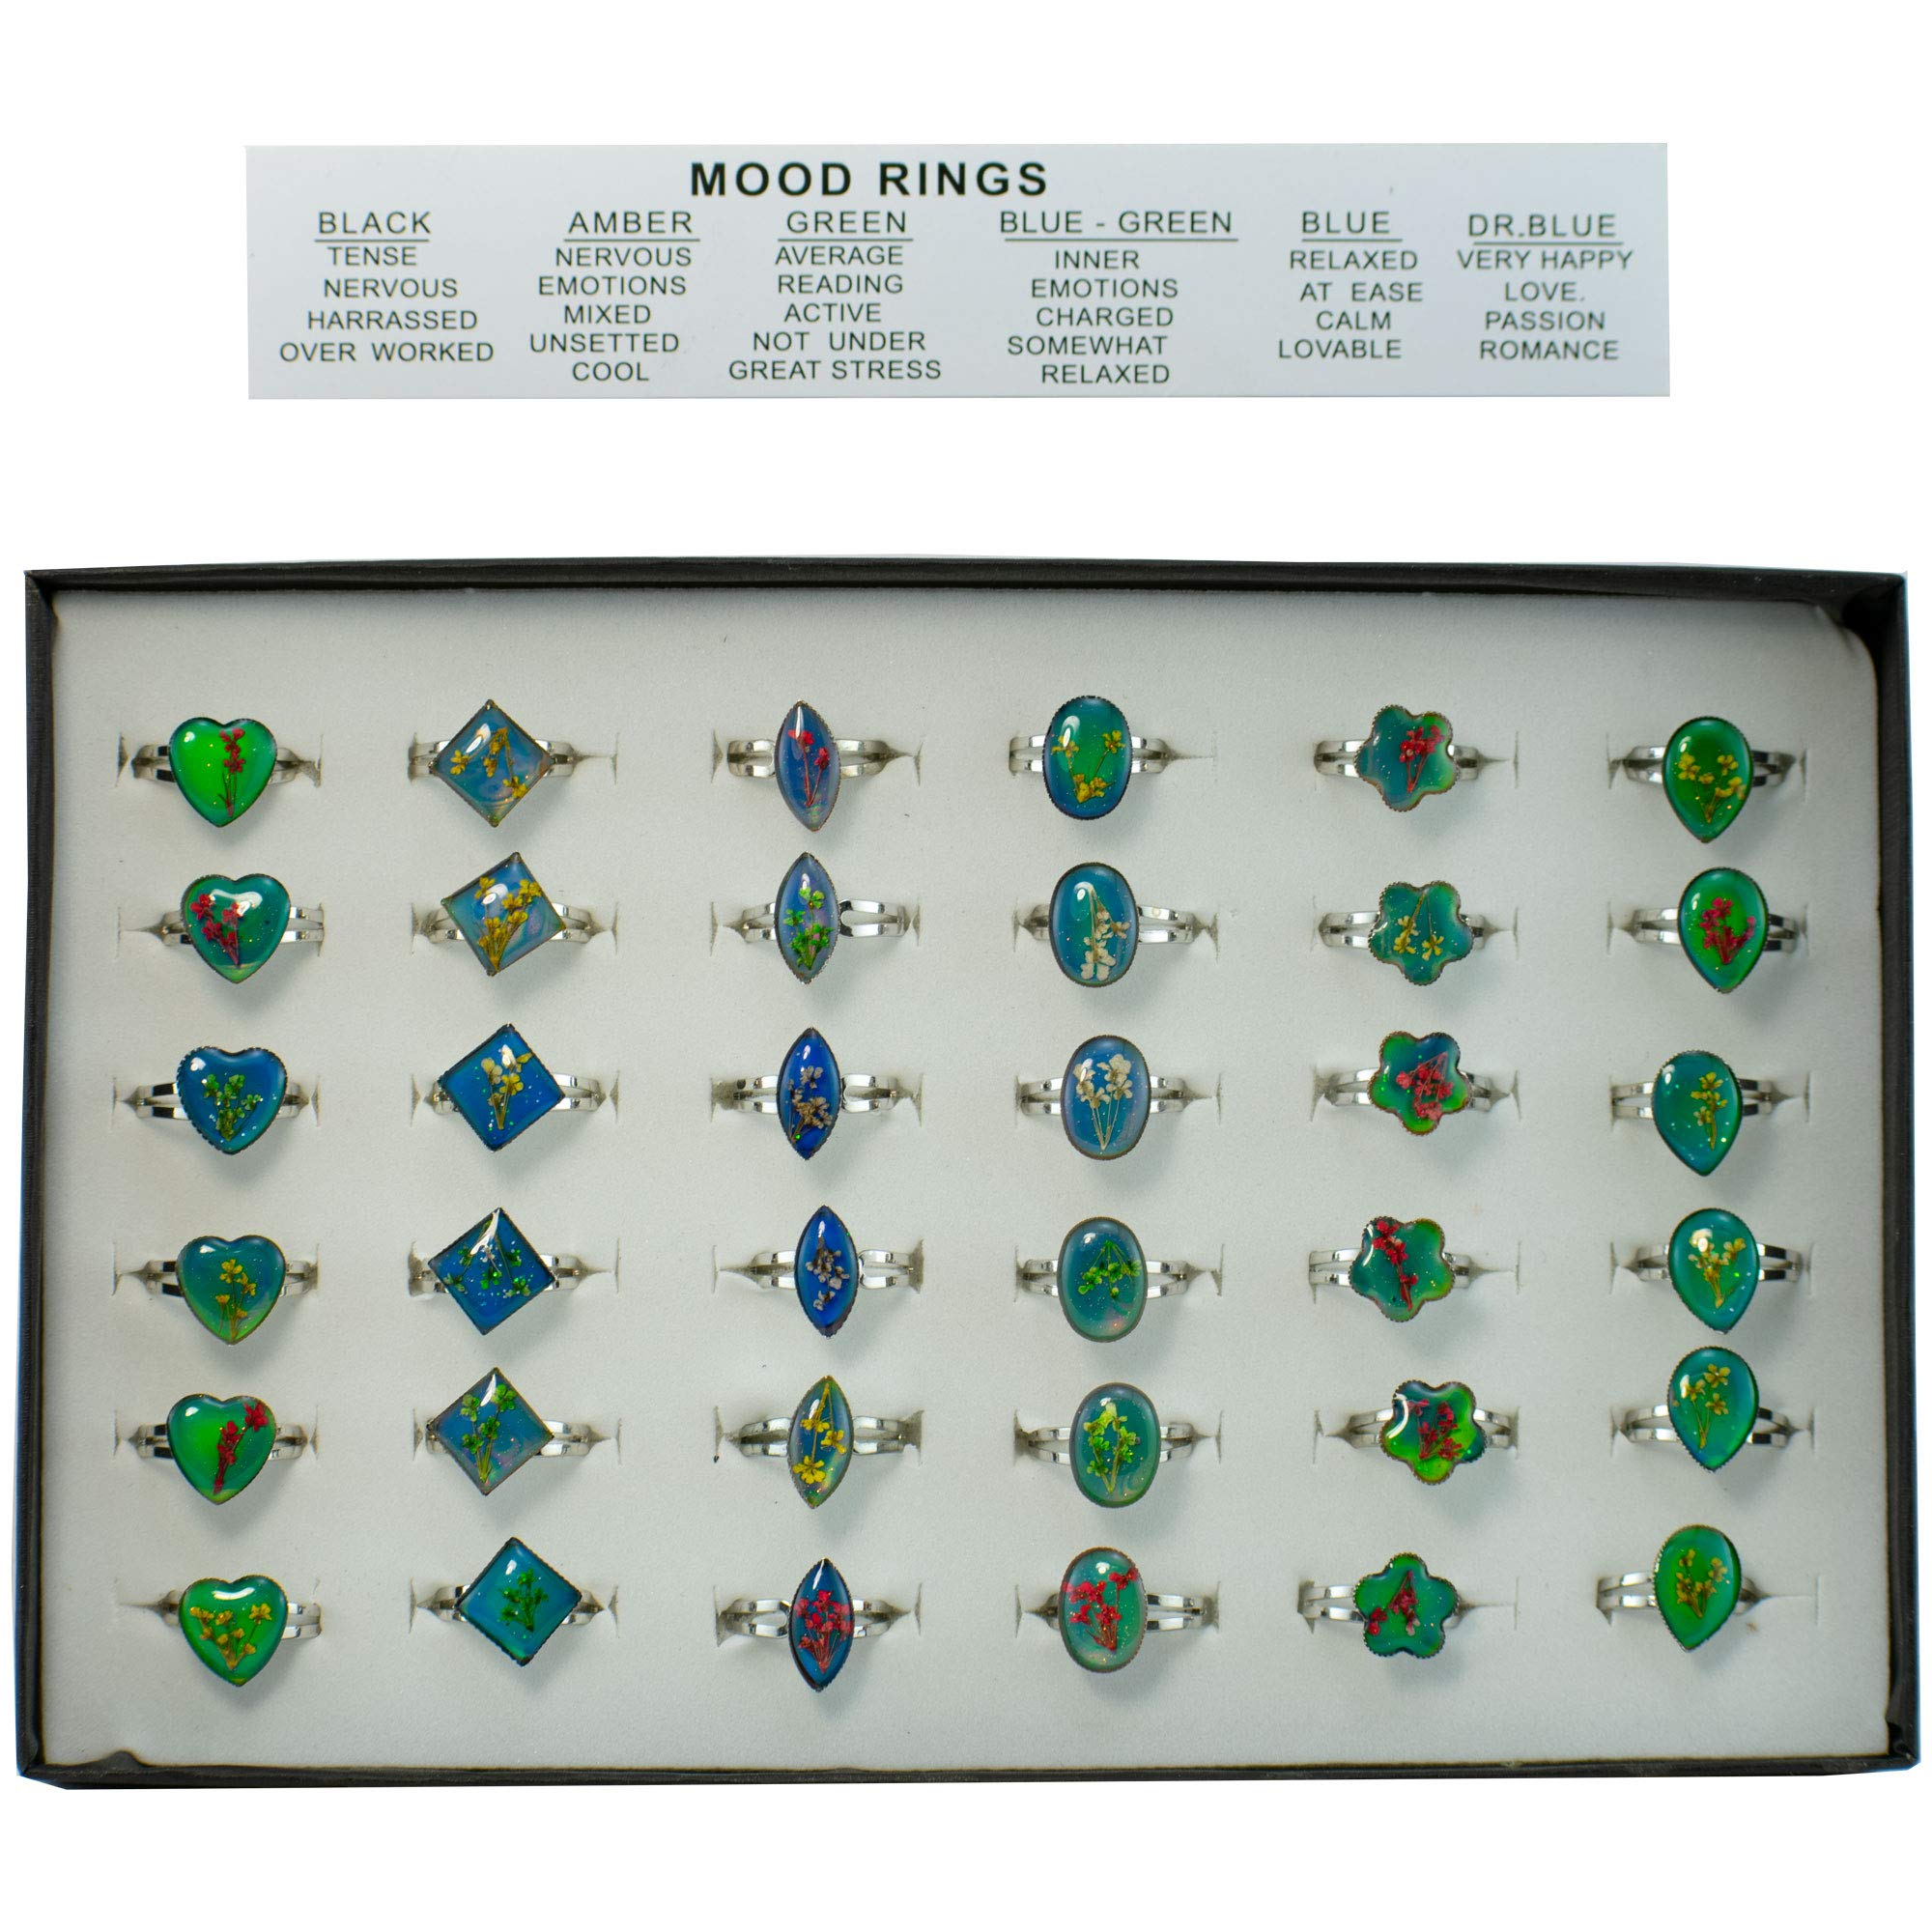 Kids Mood Ring Assortment - (36) Pieces - Assorted Styles - for Girls, Boys, Party Favors, Pinata Fillers, Gift Bags, Carnival Prizes, School Incentives